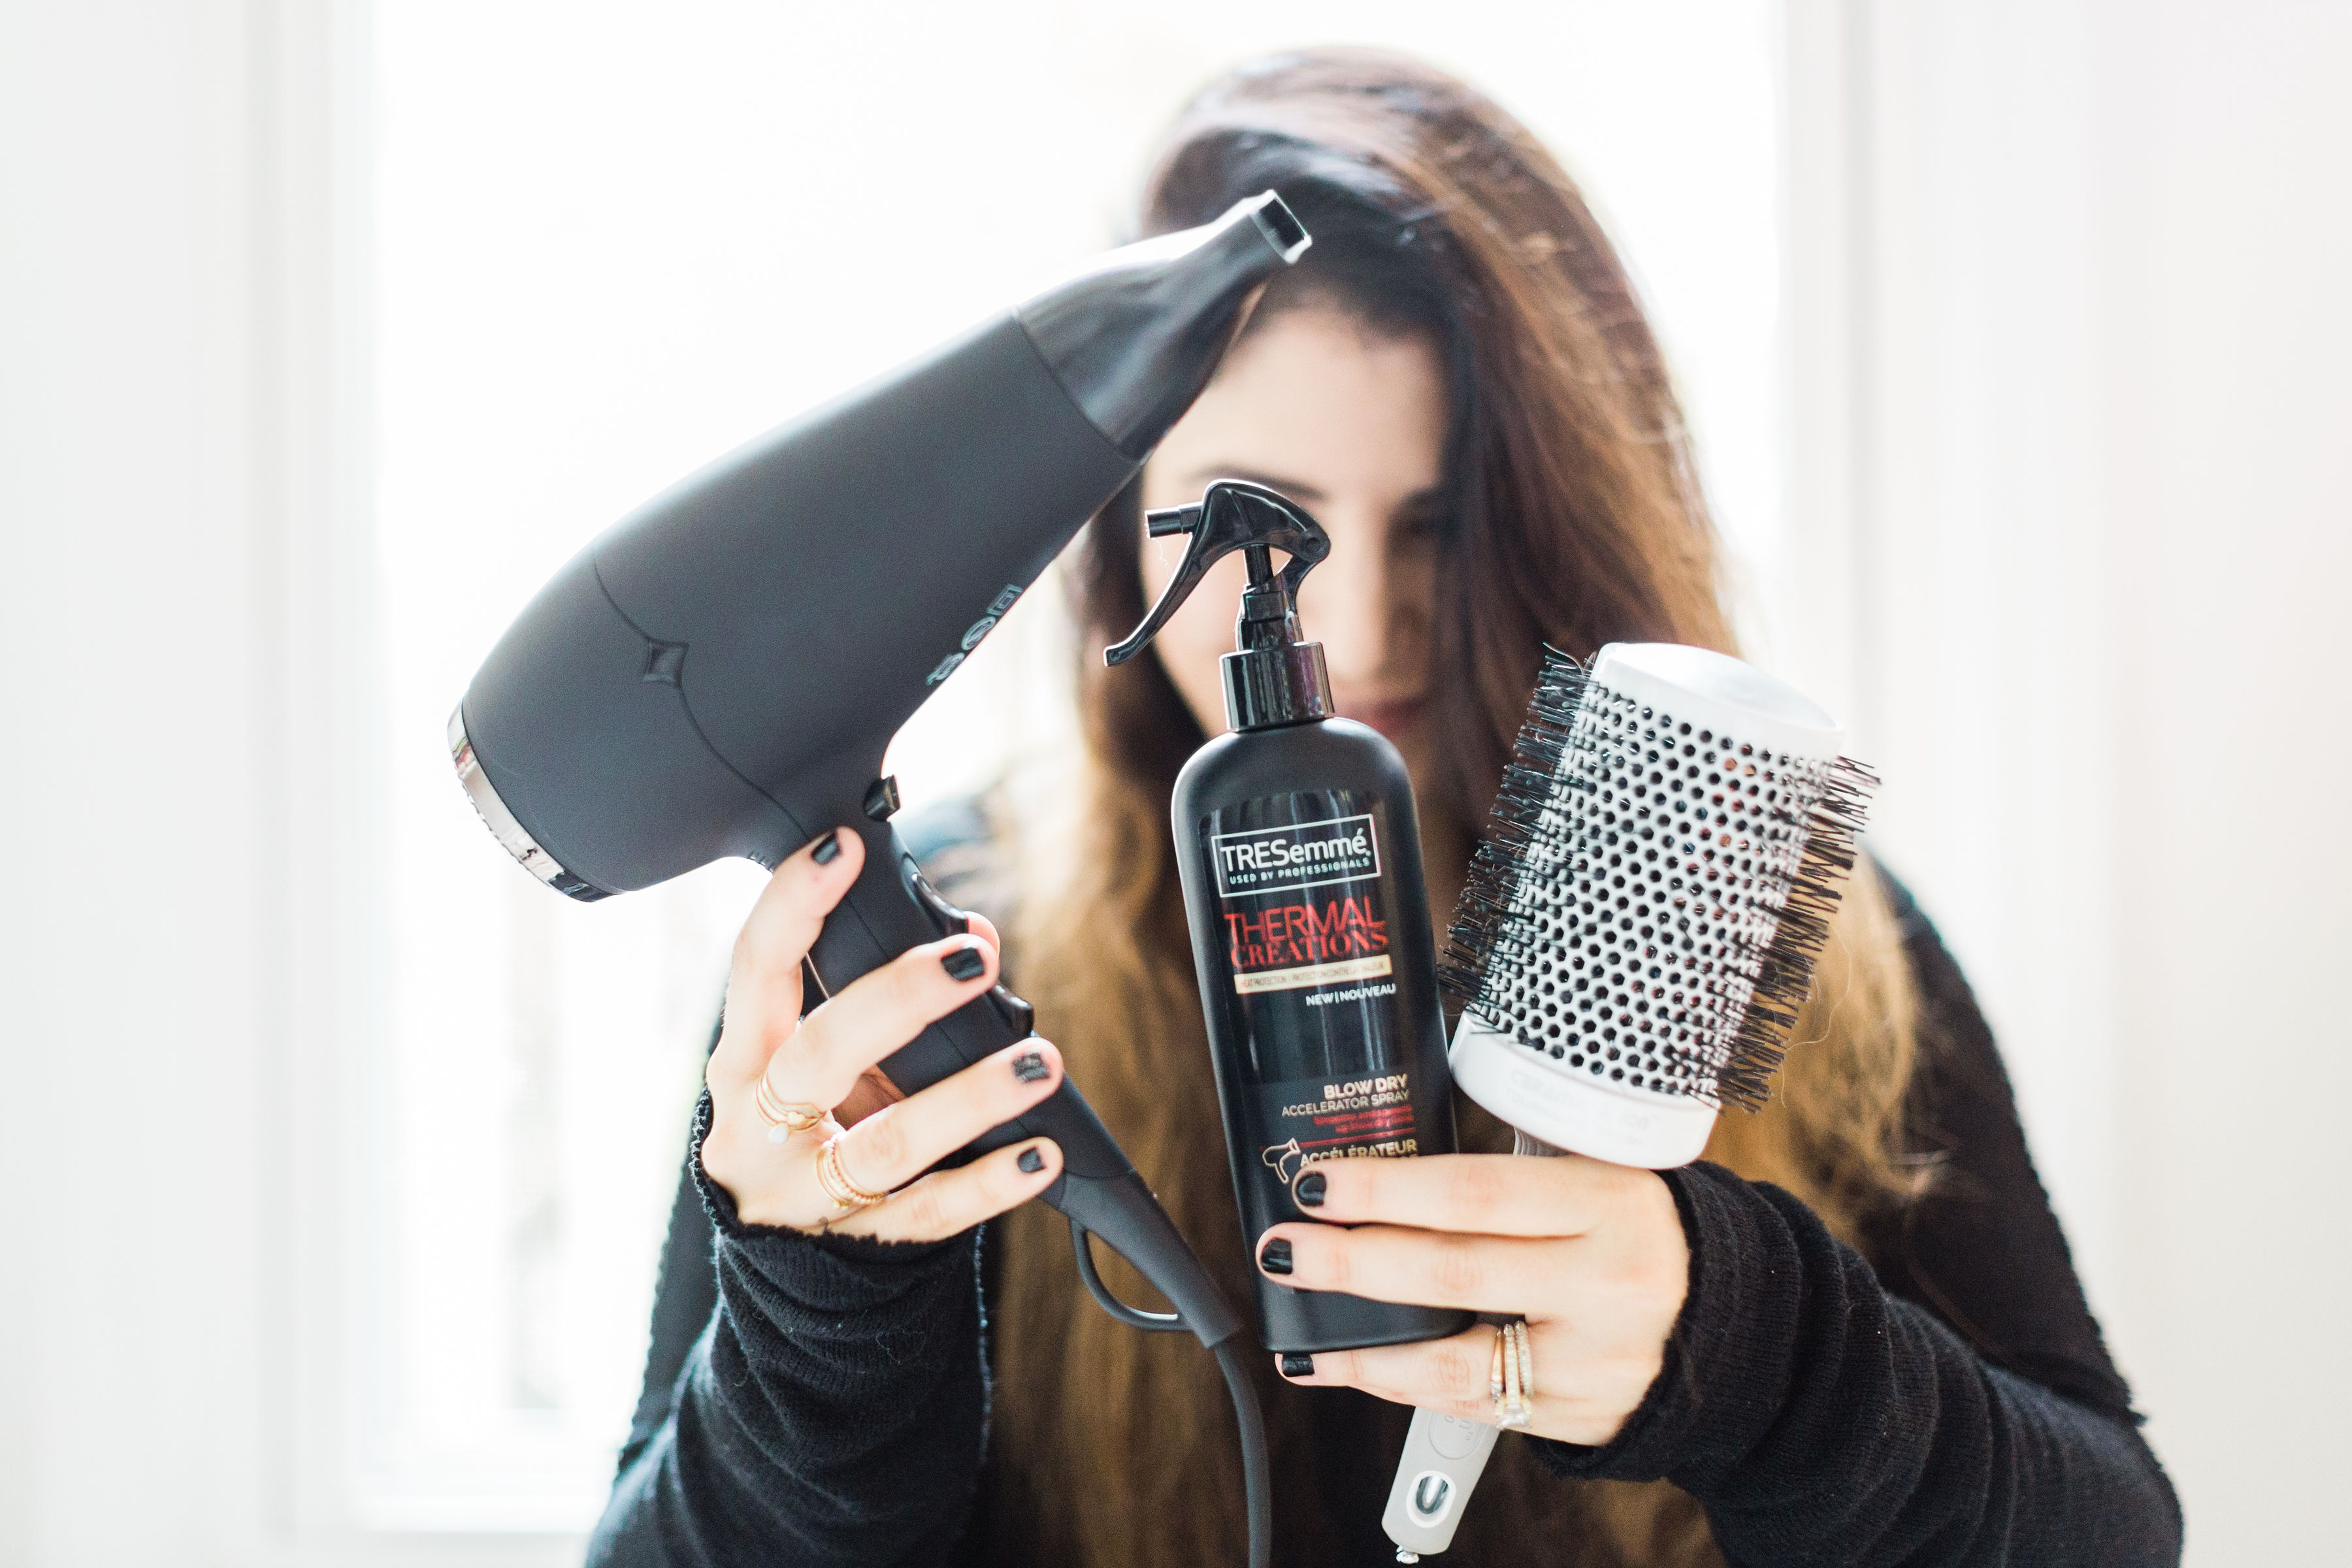 You don't need a curling iron to get perfect big, bouncy waves you'll love. A flat iron or straightener can actually give you those gorgeous, natural-looking waves every time, without ever needing to break out another hair tool! Click through for the details. #beauty #hairtutorial #easywaves #flatironwaves #flatironcurls | glitterinc.com | @glitterinc